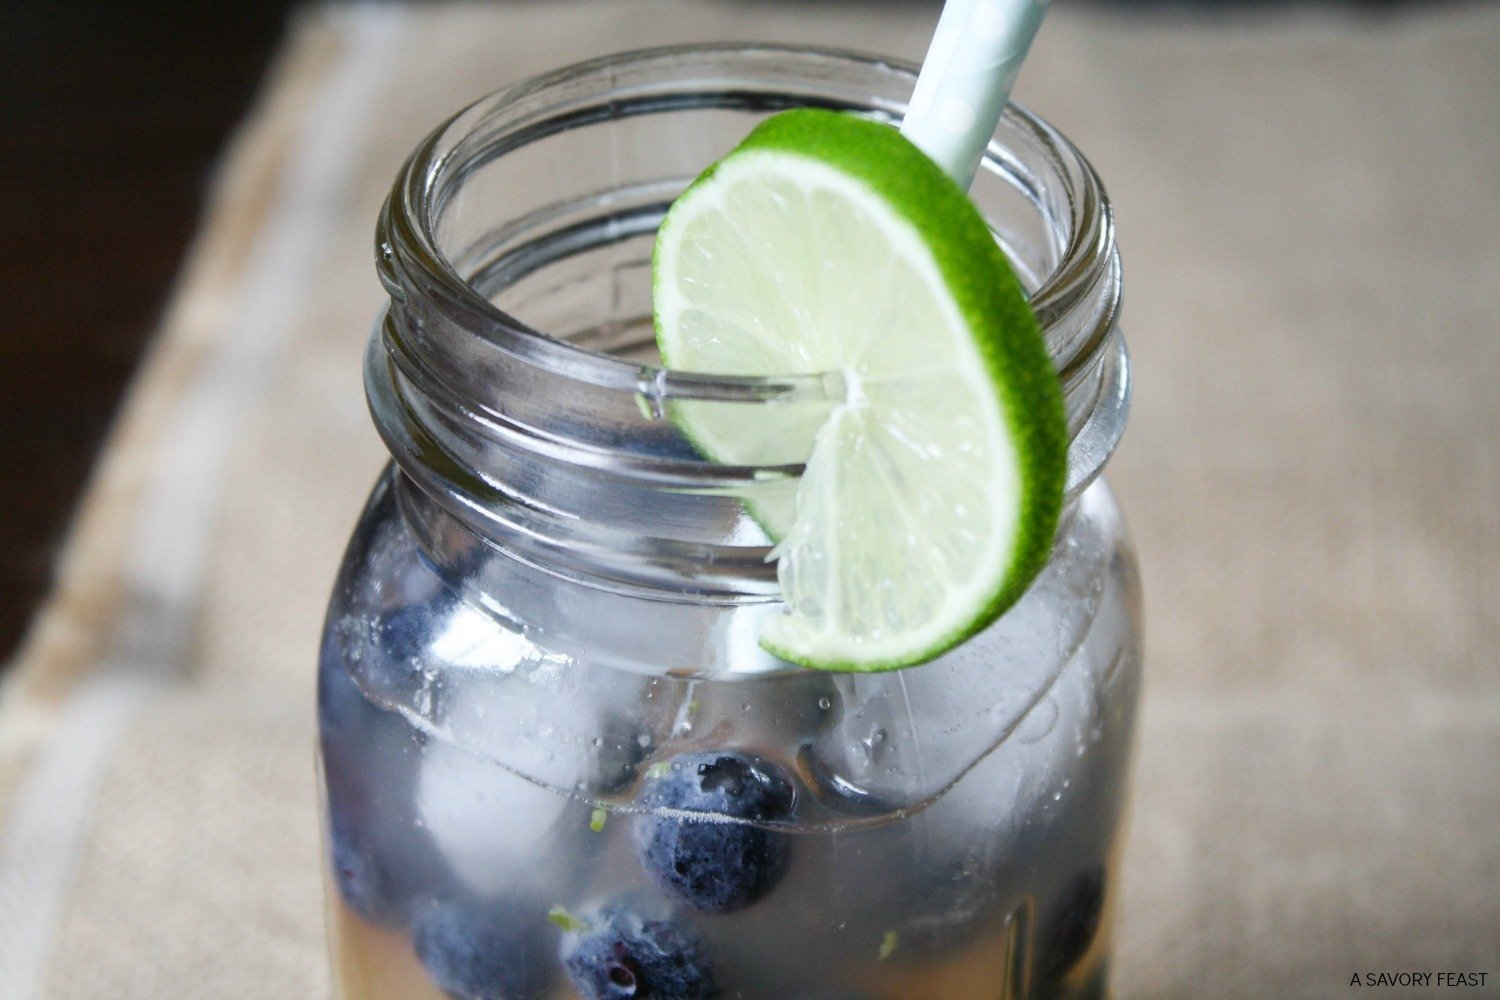 Nothing beats an ice cold fruity drink on a hot summer day! Try this healthier take on a limeade. It's sweetened with honey instead of sugar! Tart and flavorful, this drink is made with fresh squeezed lime juice and garnished with frozen blueberries!